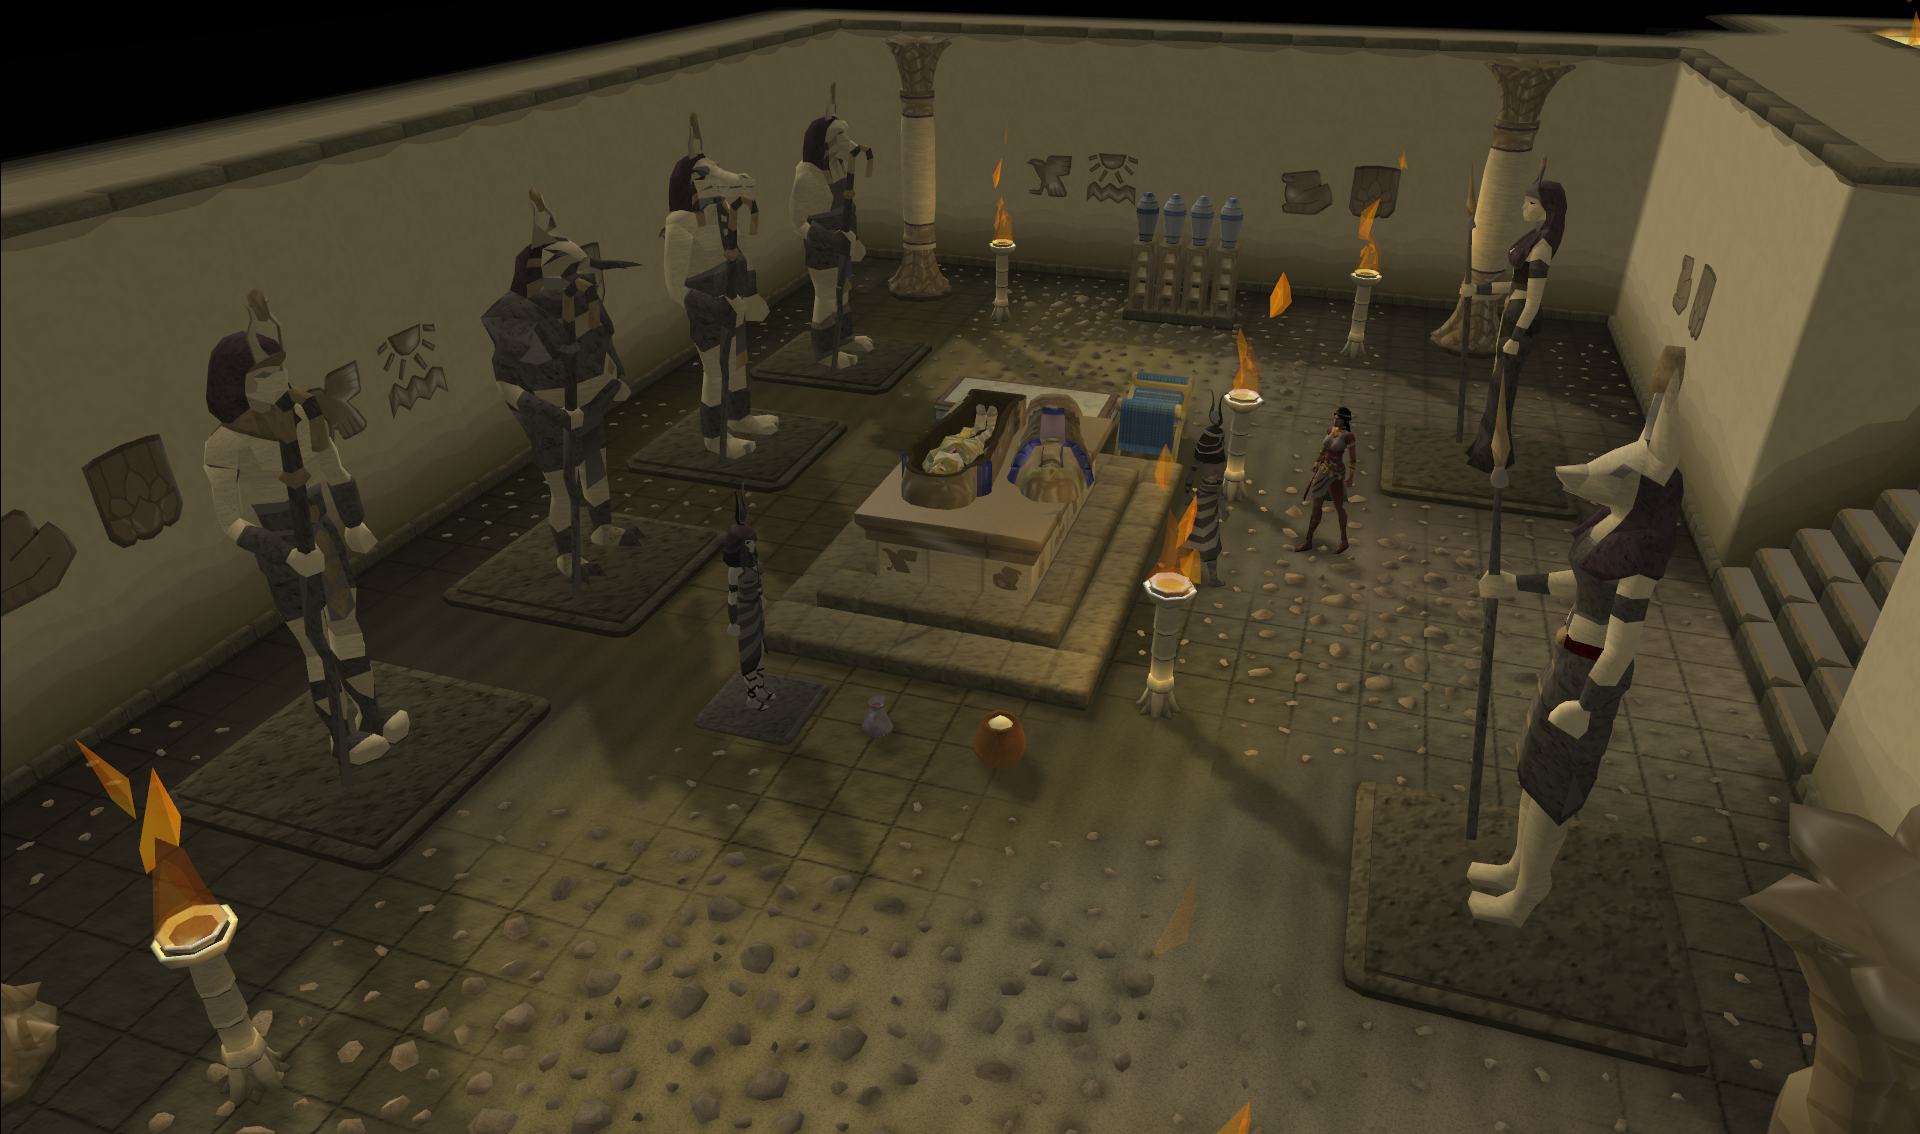 Pharaoh_Queen_Tomb you will need to cut the gems before you can use them and RS Gold